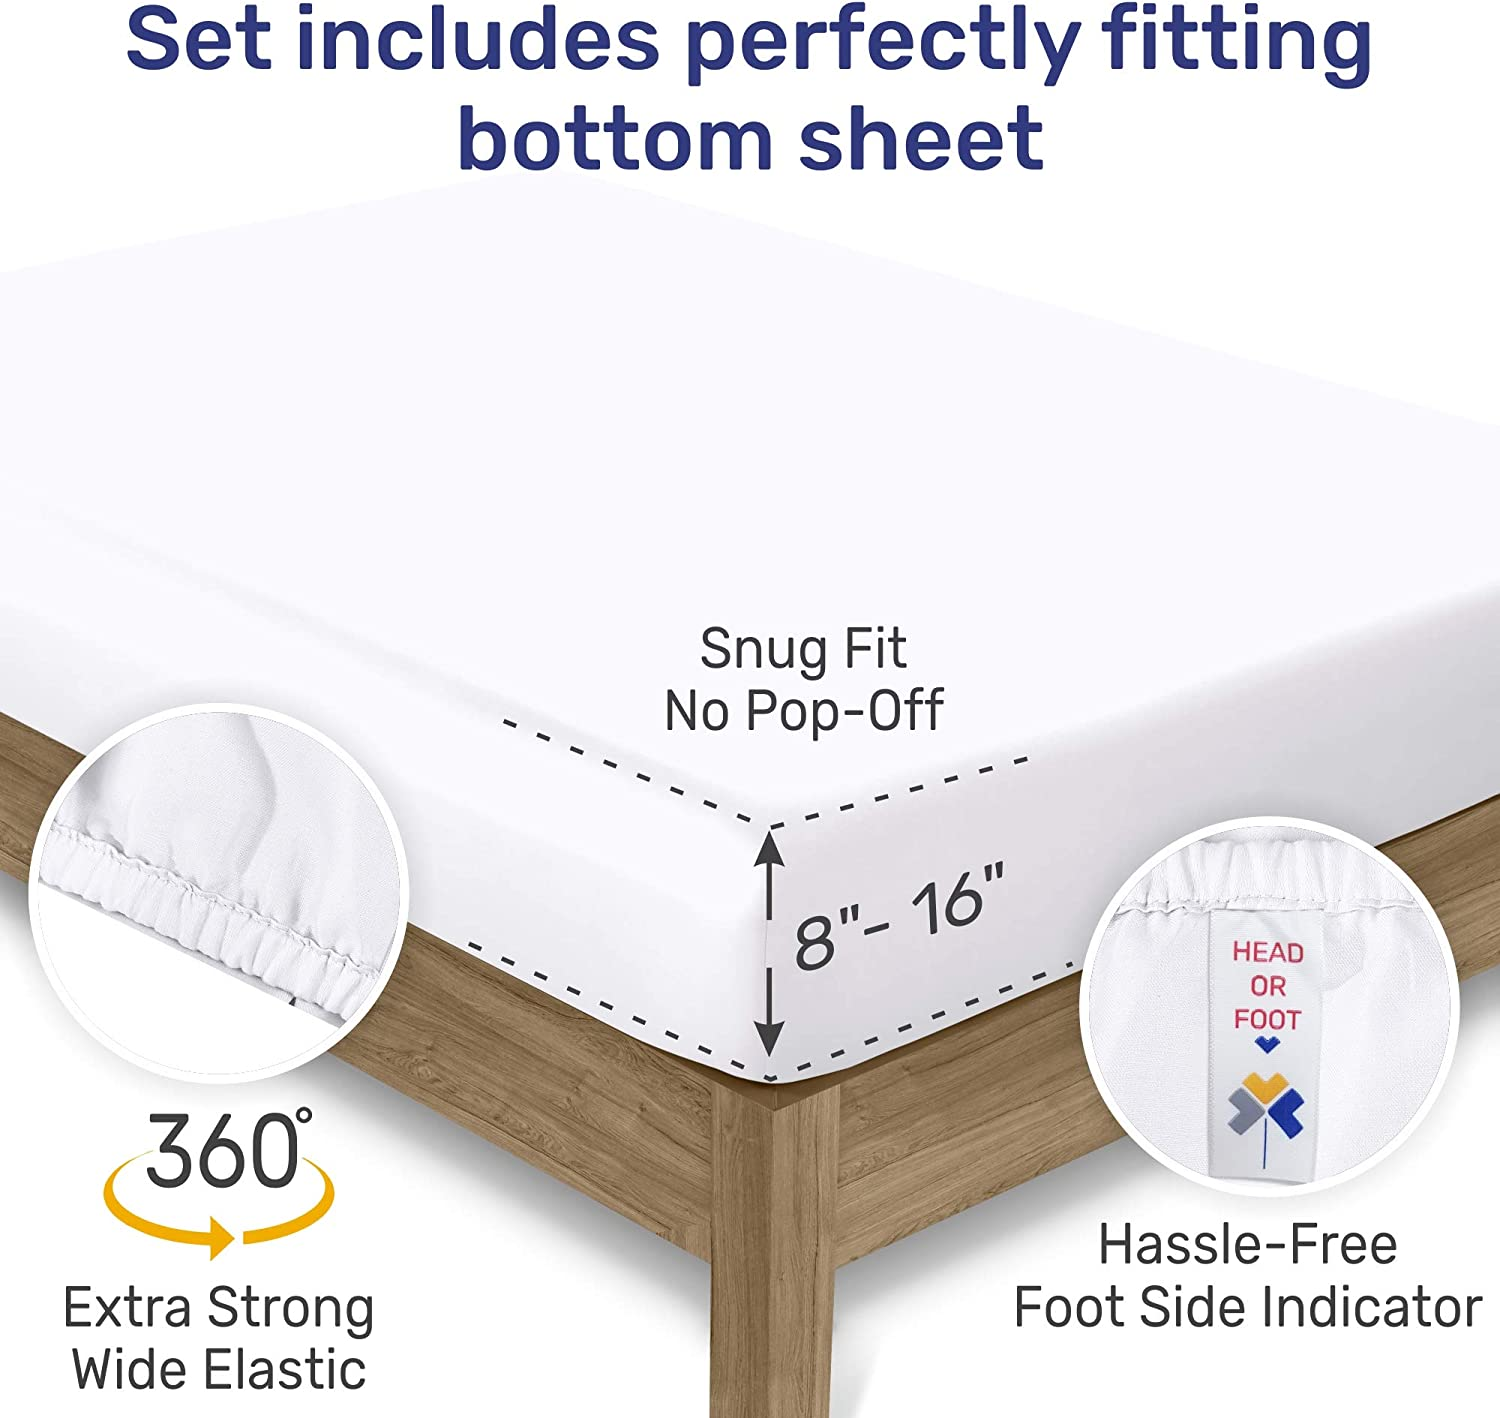 600-Thread-Count Best 100% Cotton Sheets & Pillowcases Set - 4 Pc Pure White Extra Long-staple Combed Cotton Bedding Queen Sheet For Bed, Fits Mattress 16'' Deep Pocket, Soft & Silky Sateen Weave: Home & Kitchen